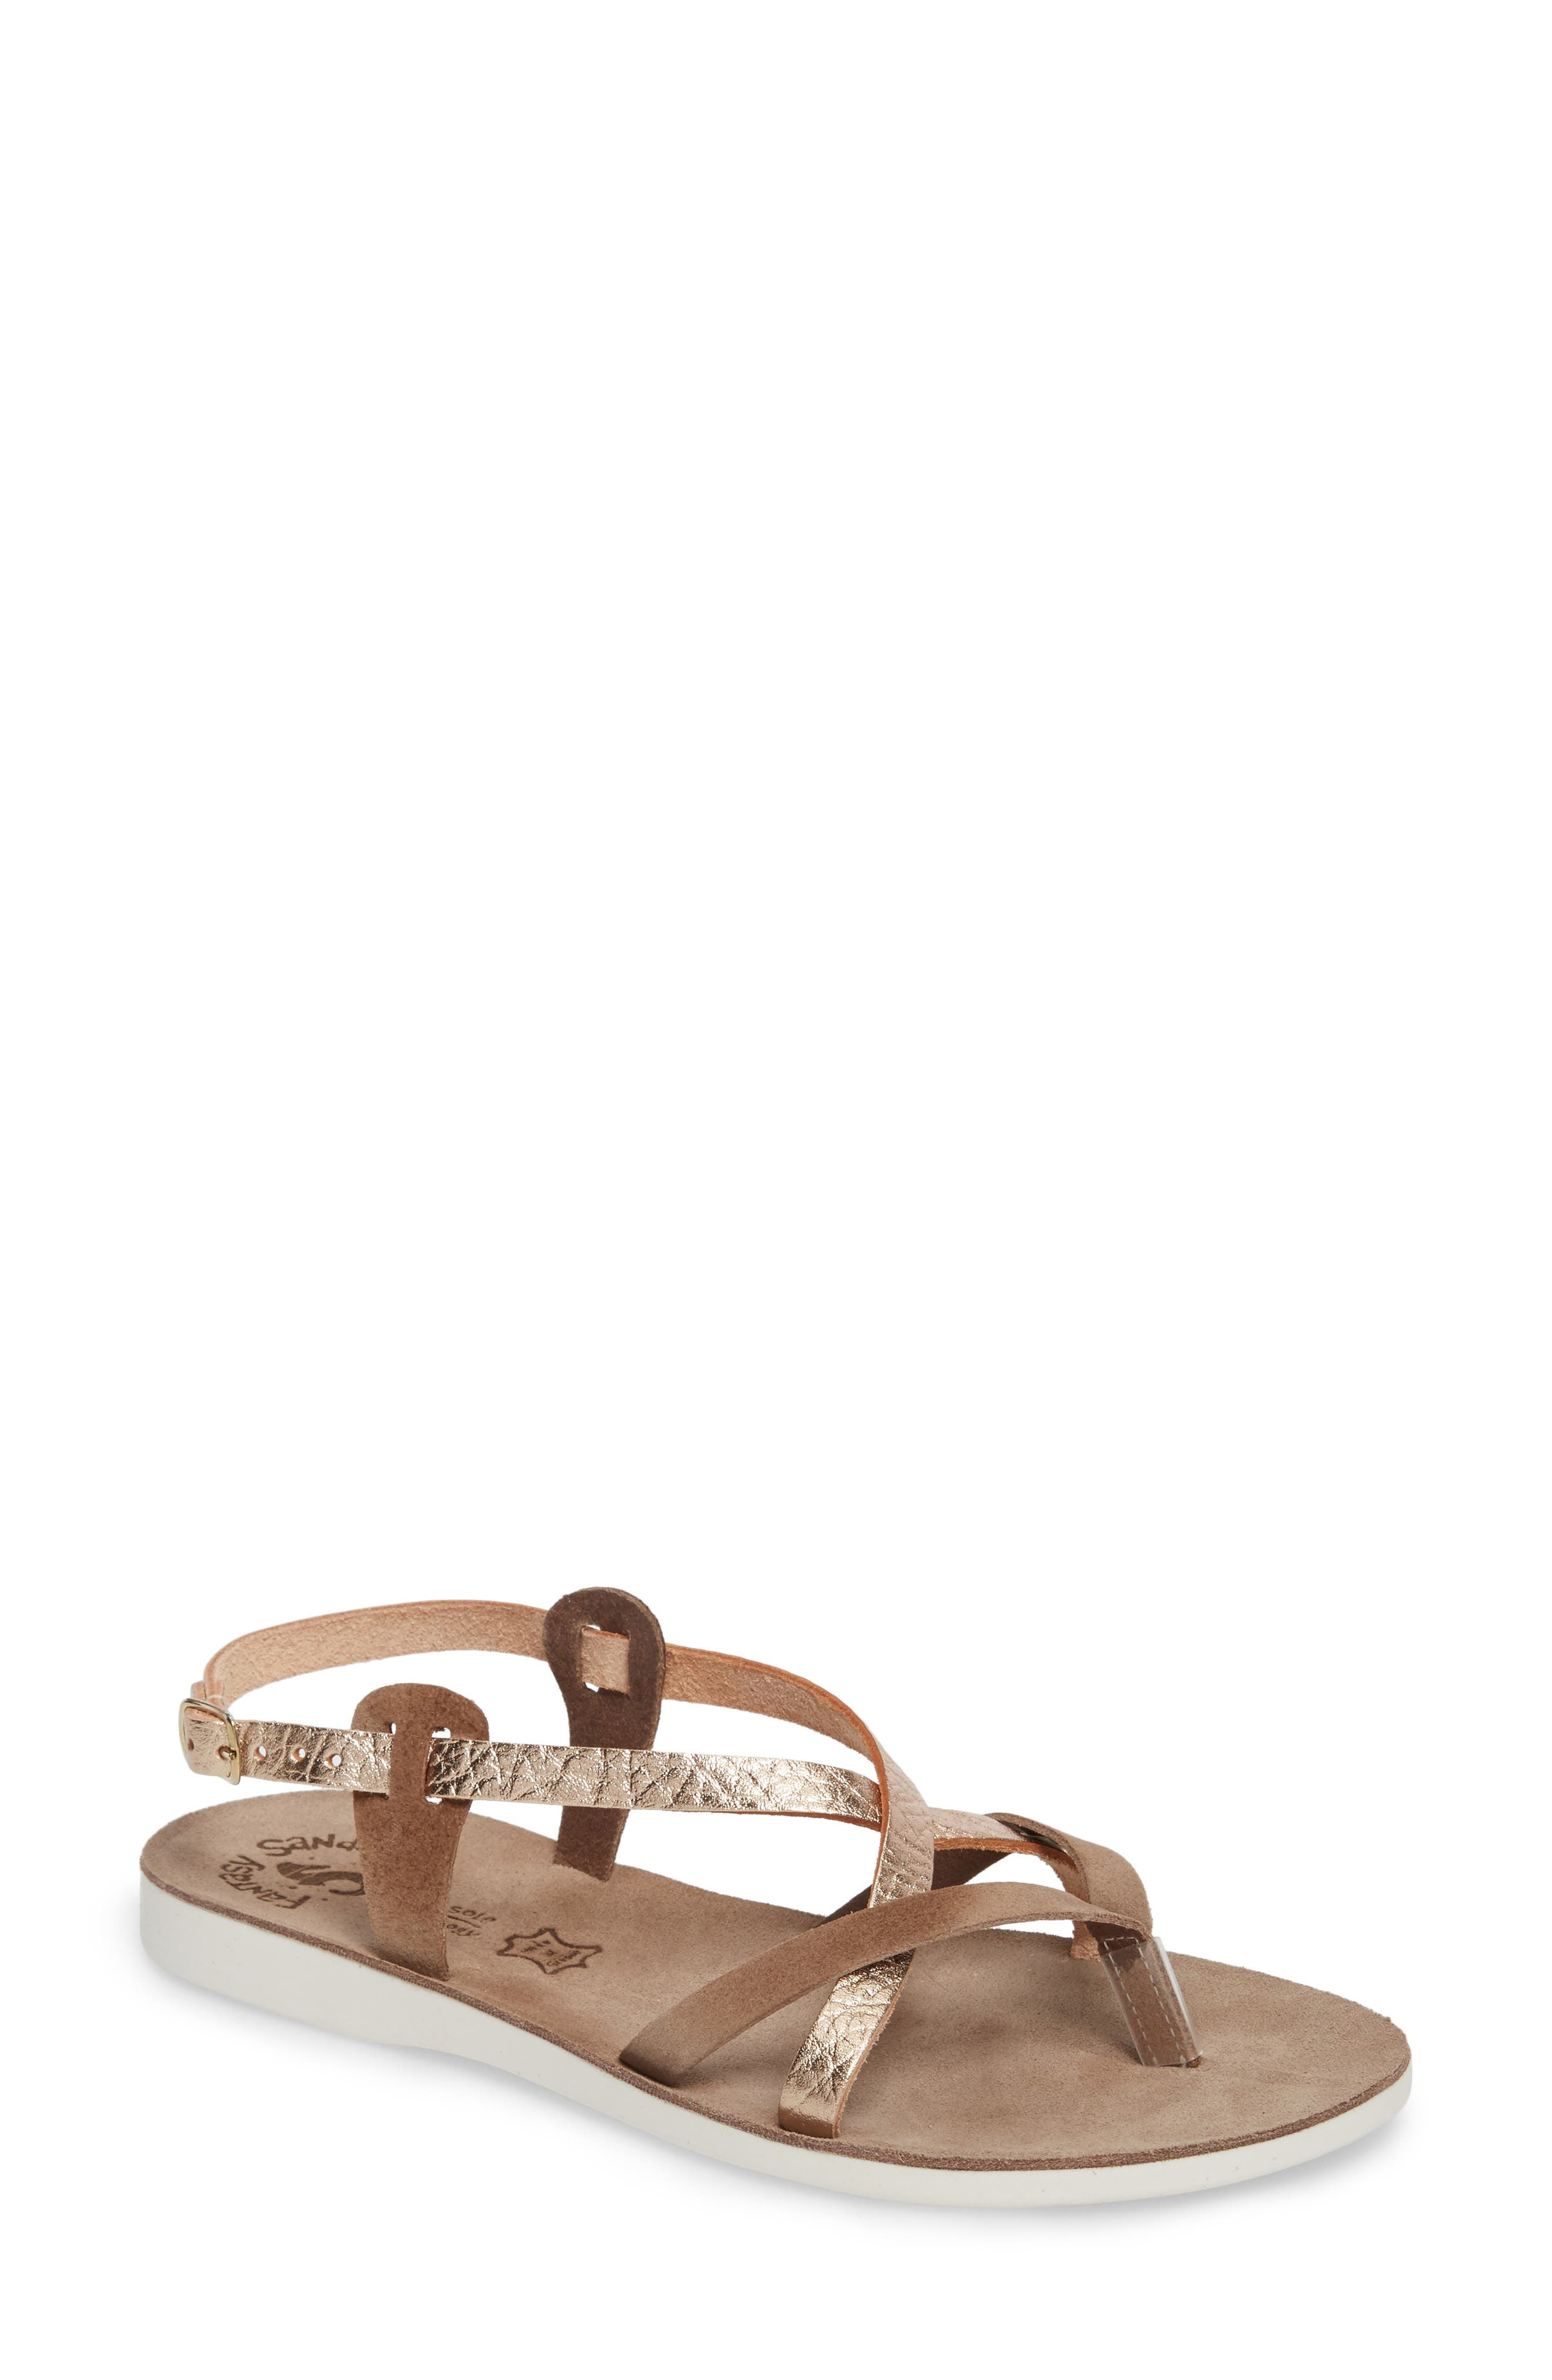 Anelia Fantasy Sandal,                         Main,                         color, Coffee Volcano Leather